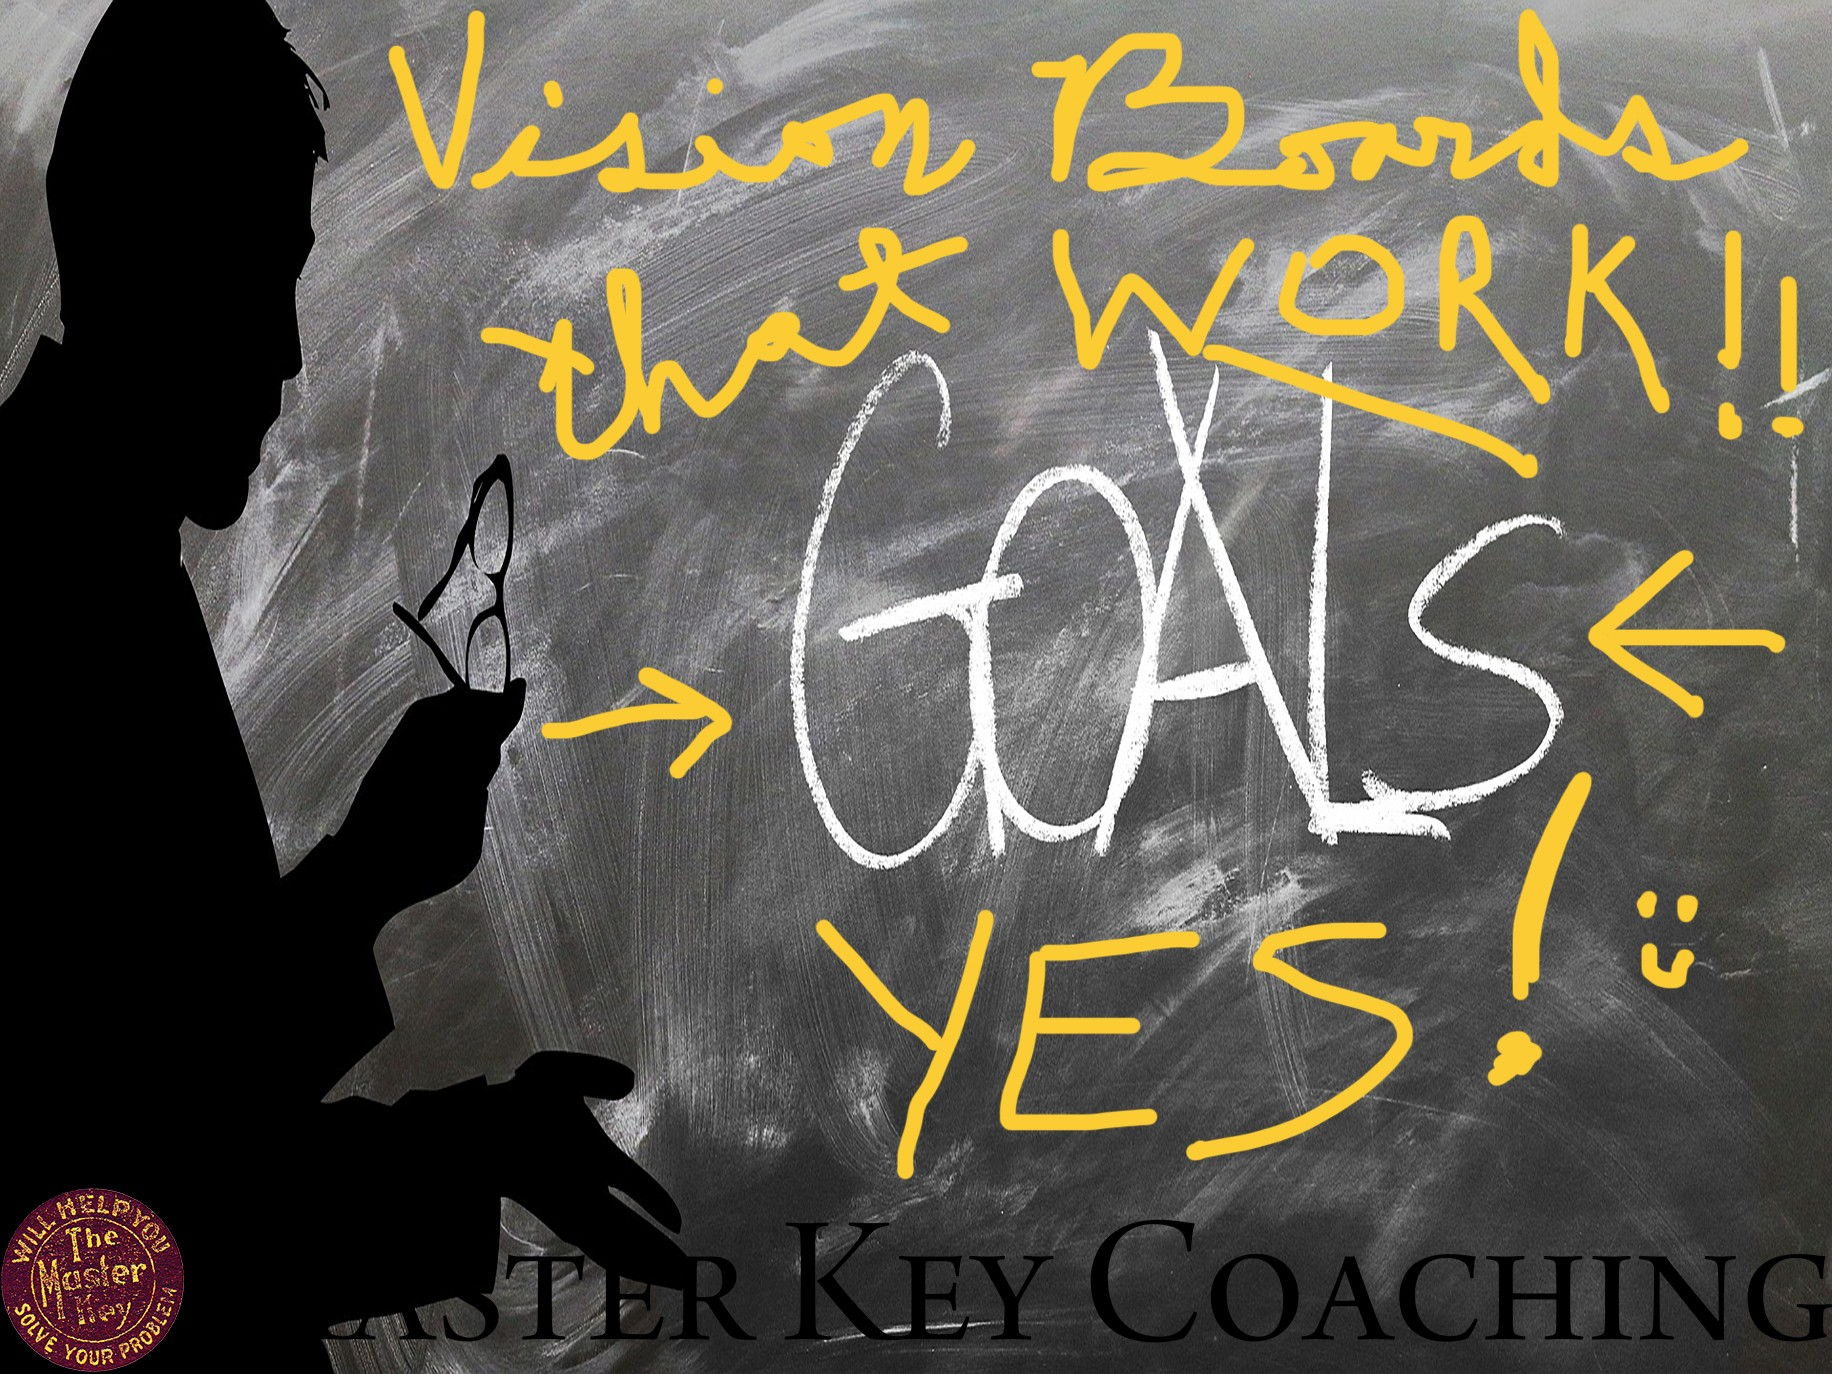 How to Make a Goal (Vision) Board That Actually Works (masterkeycoaching.com)